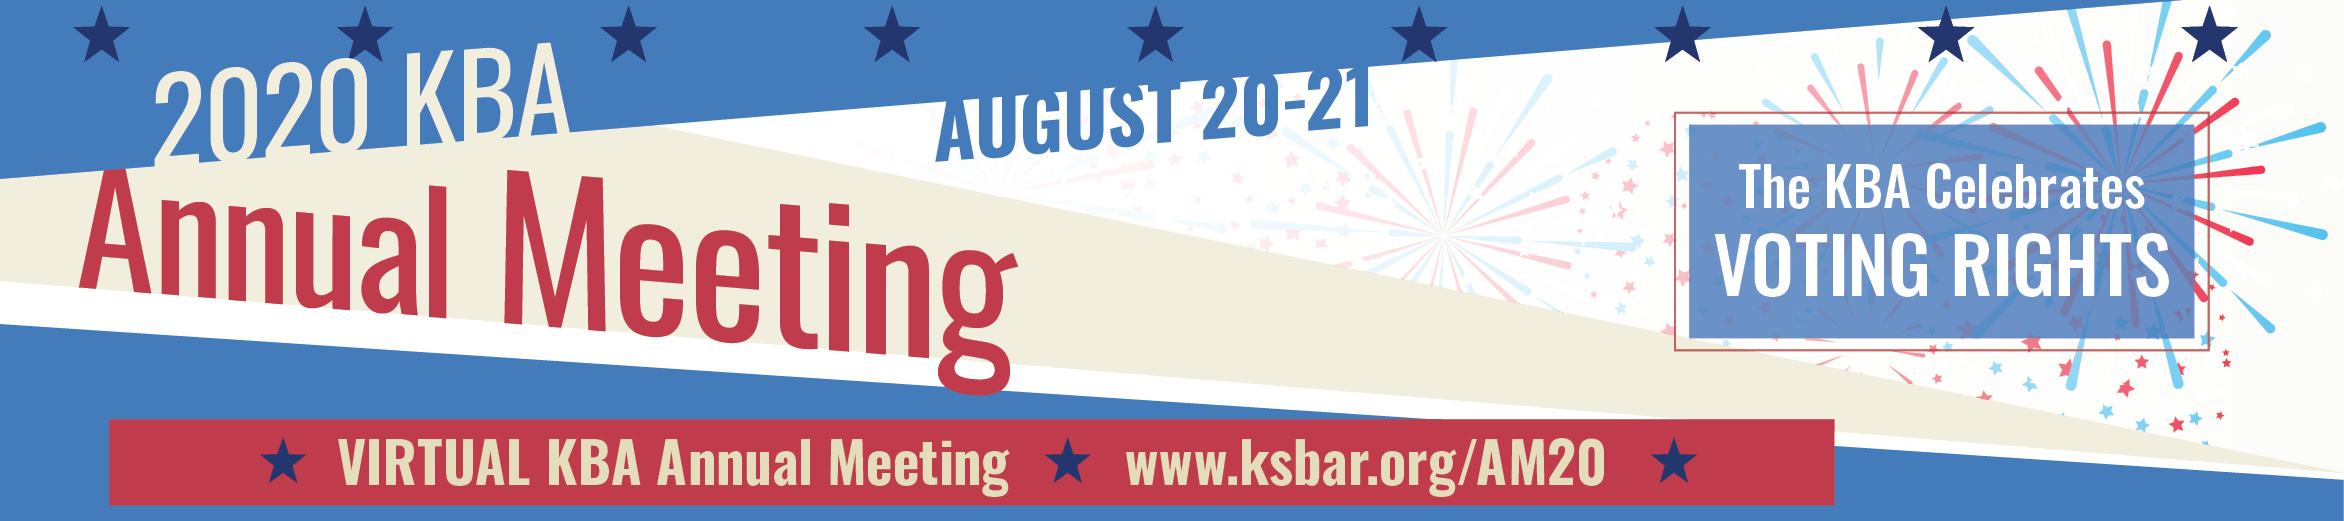 Save the Date for VIRTUAL KBA Annual Meeting. August 20-21, 2020